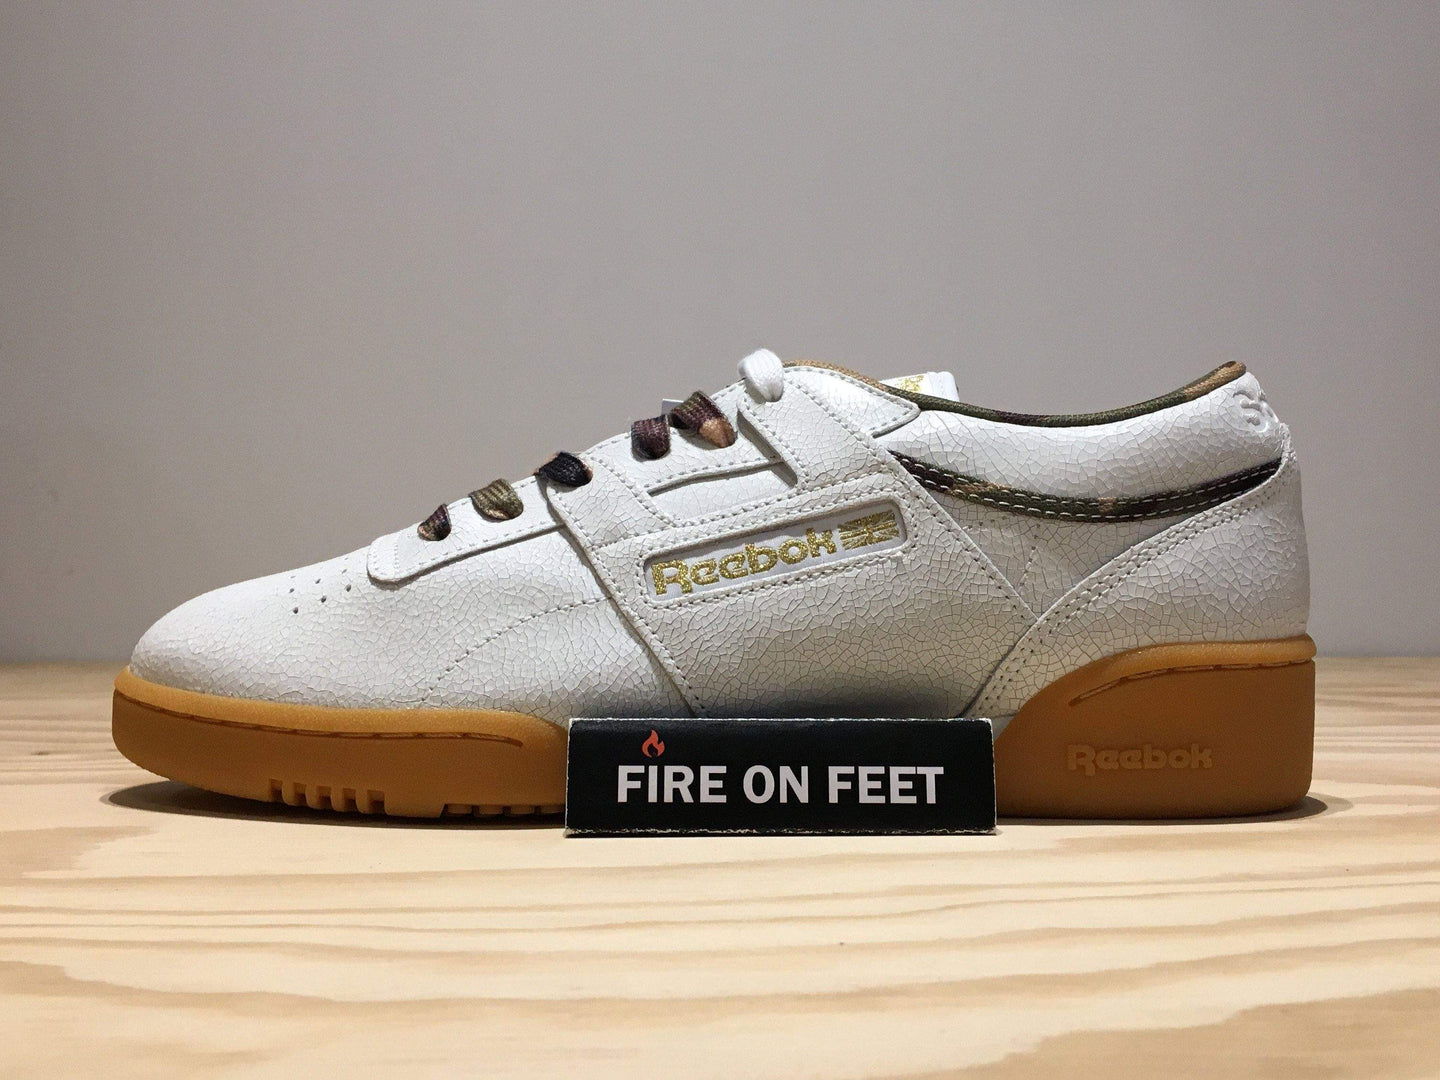 Sneaker Politics x Humidity x Reebok Workout Low-Fireonfeet